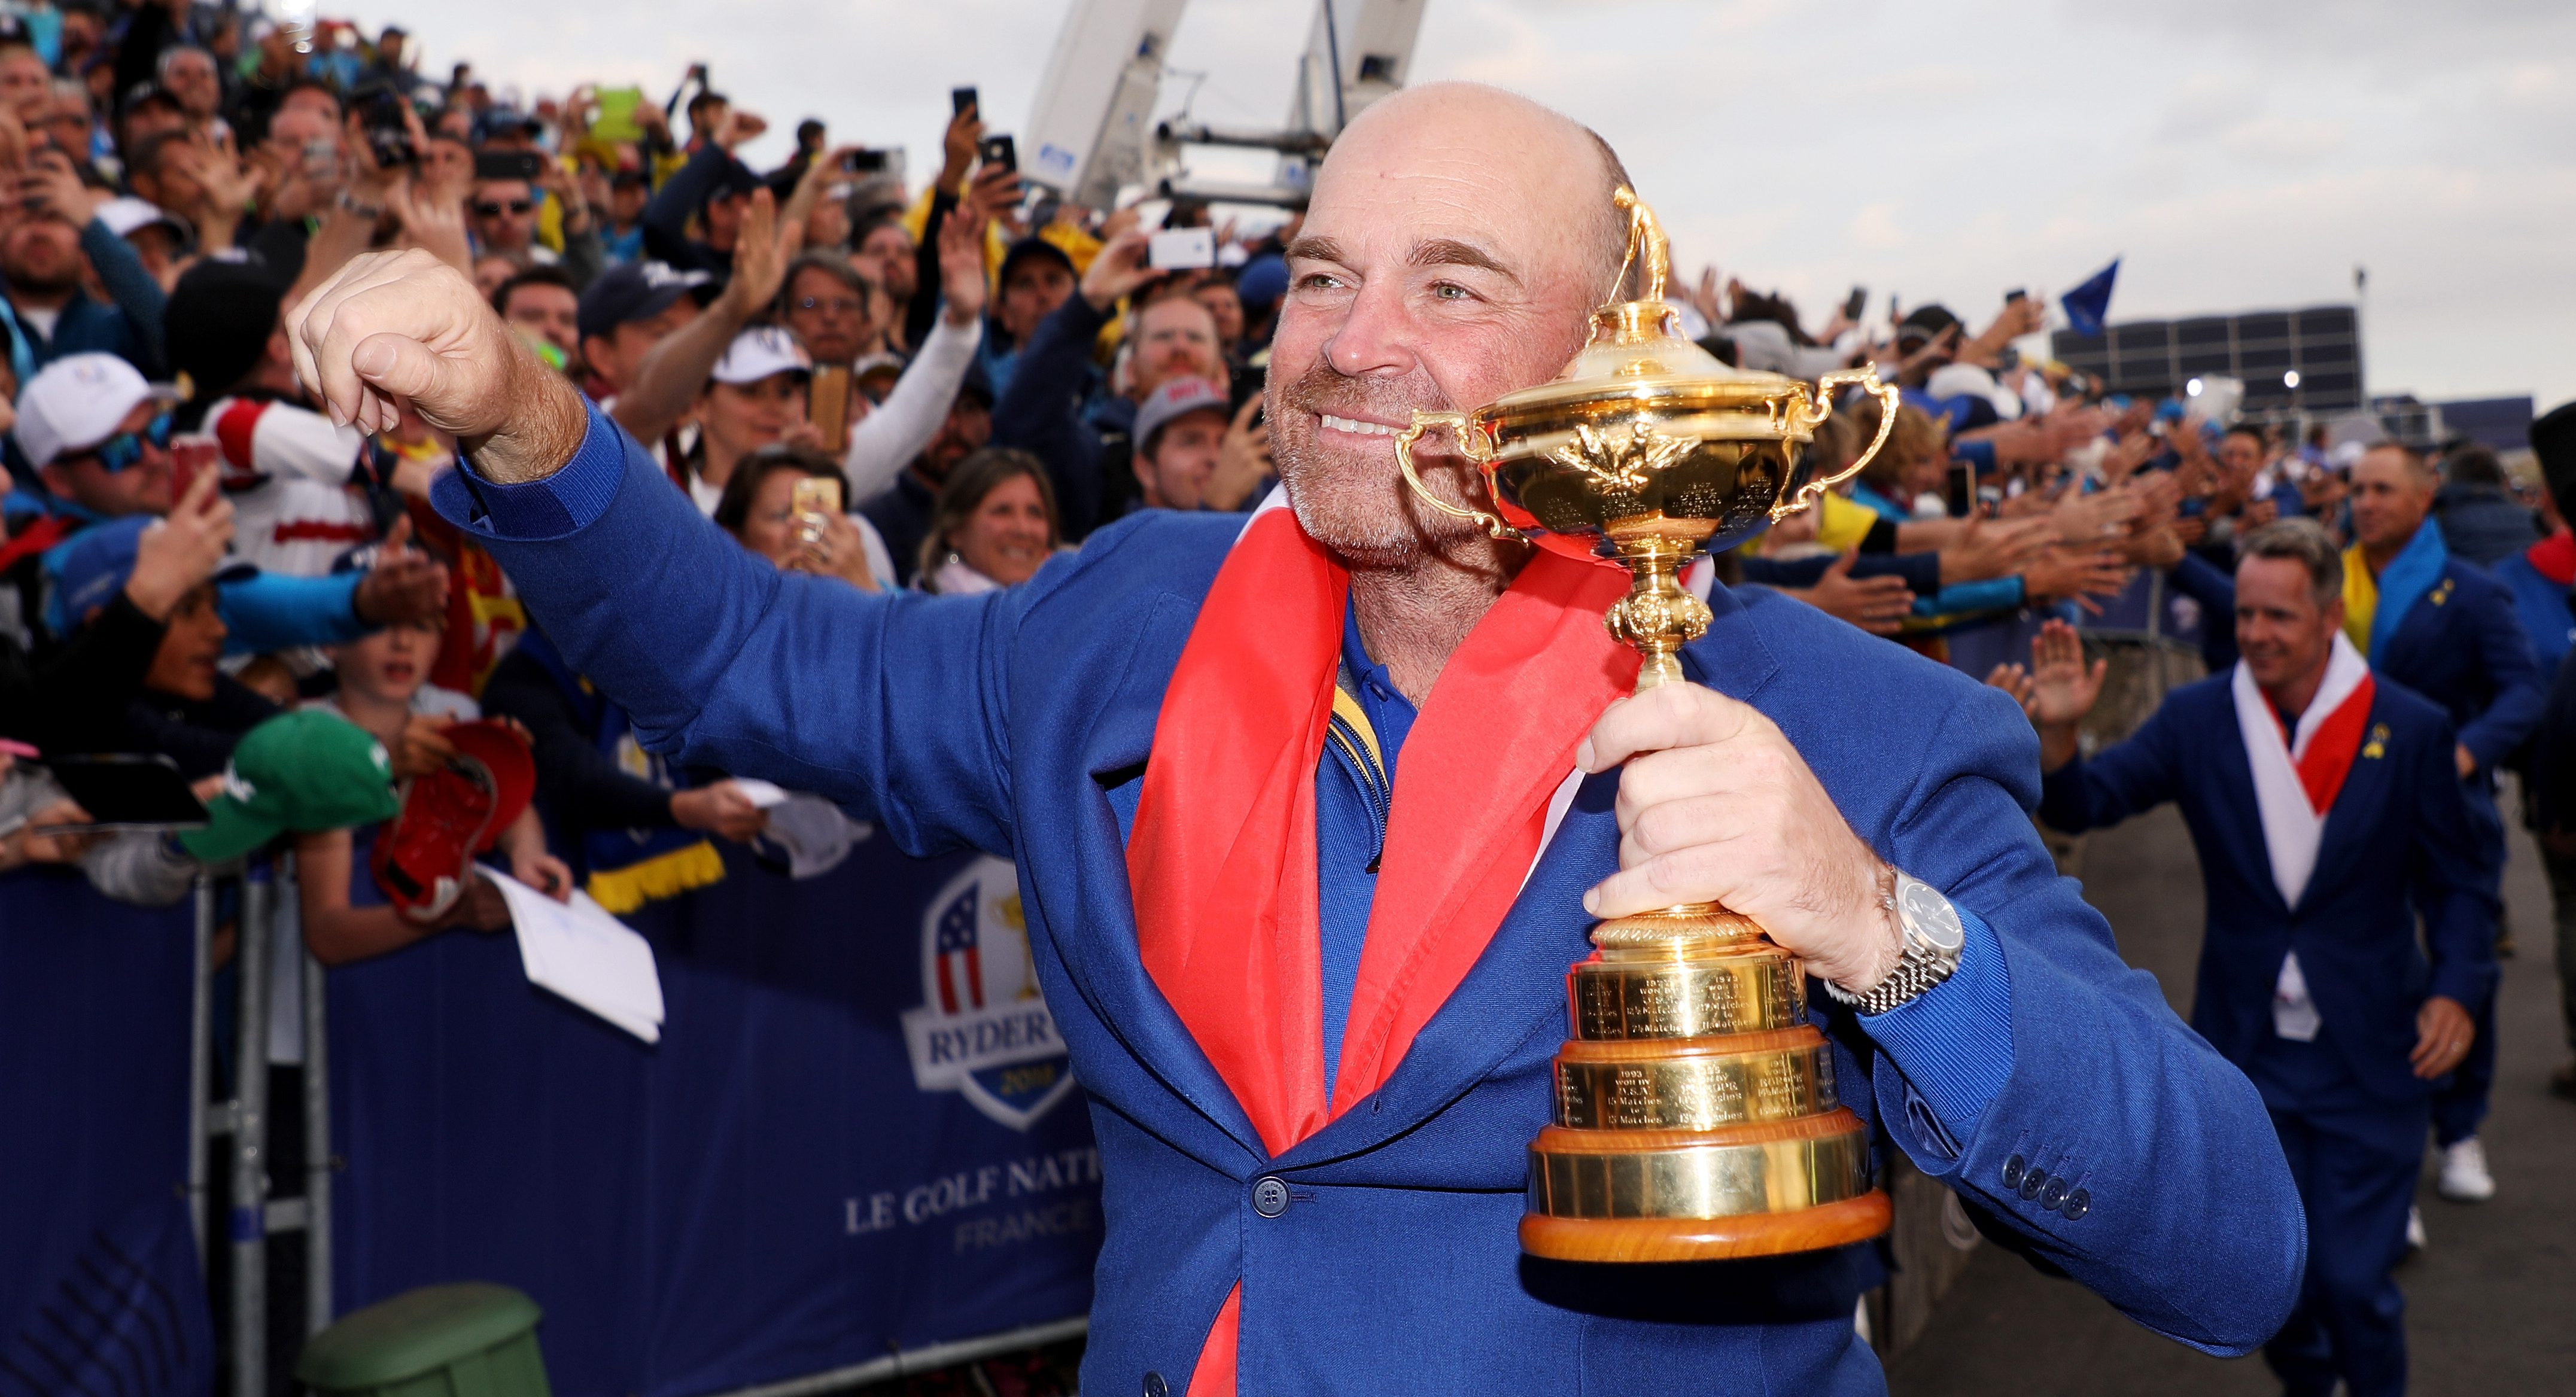 PARIS, FRANCE - SEPTEMBER 30: Captain Thomas Bjorn of Europe celebrates with The Ryder Cup after singles matches of the 2018 Ryder Cup at Le Golf National on September 30, 2018 in Paris, France. (Photo by Christian Petersen/Getty Images)